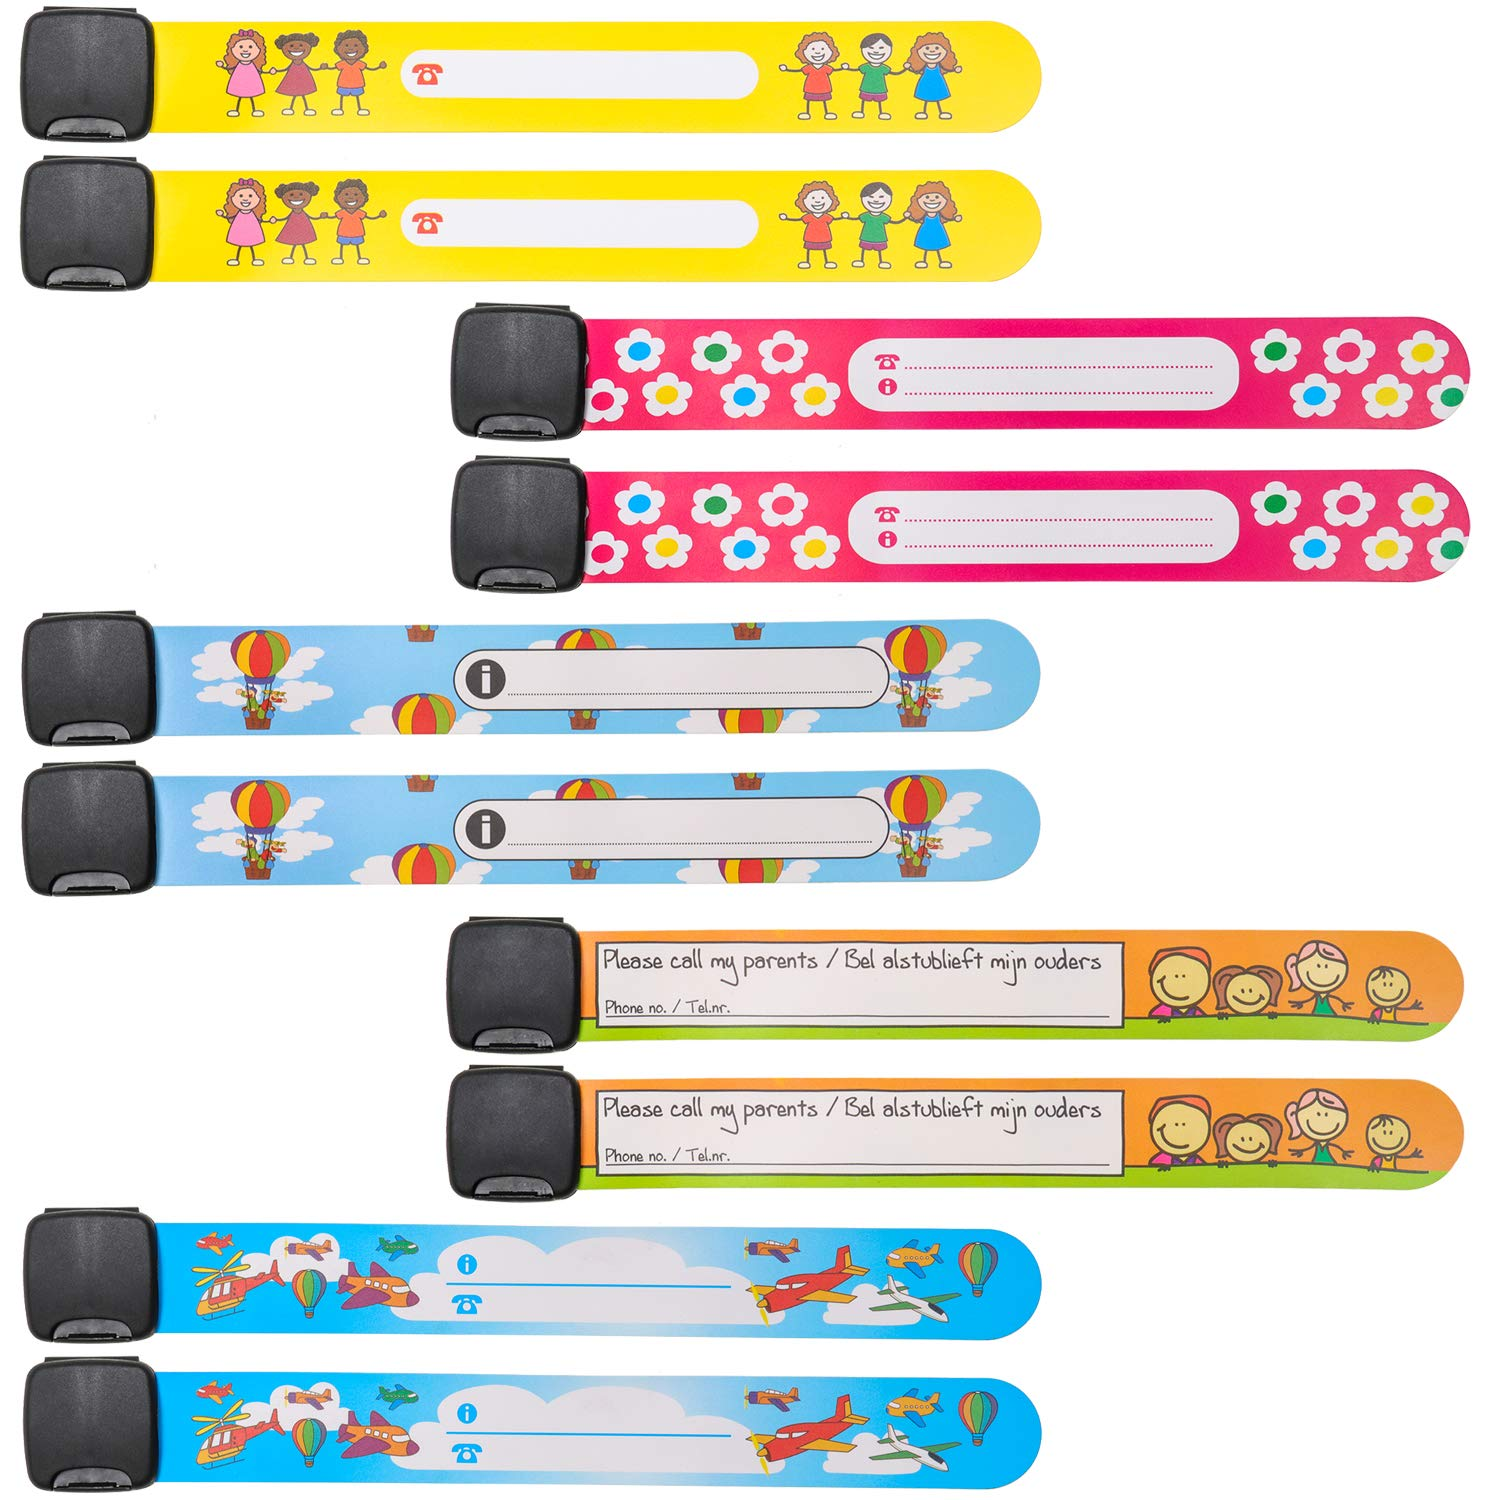 Child Safety ID Wristband,Kid ID Bracelet Emergency Name Armband Reusable and Waterproof Child ID Wrist Band for Boys Girls Toddlers 10PCS CGBOOM